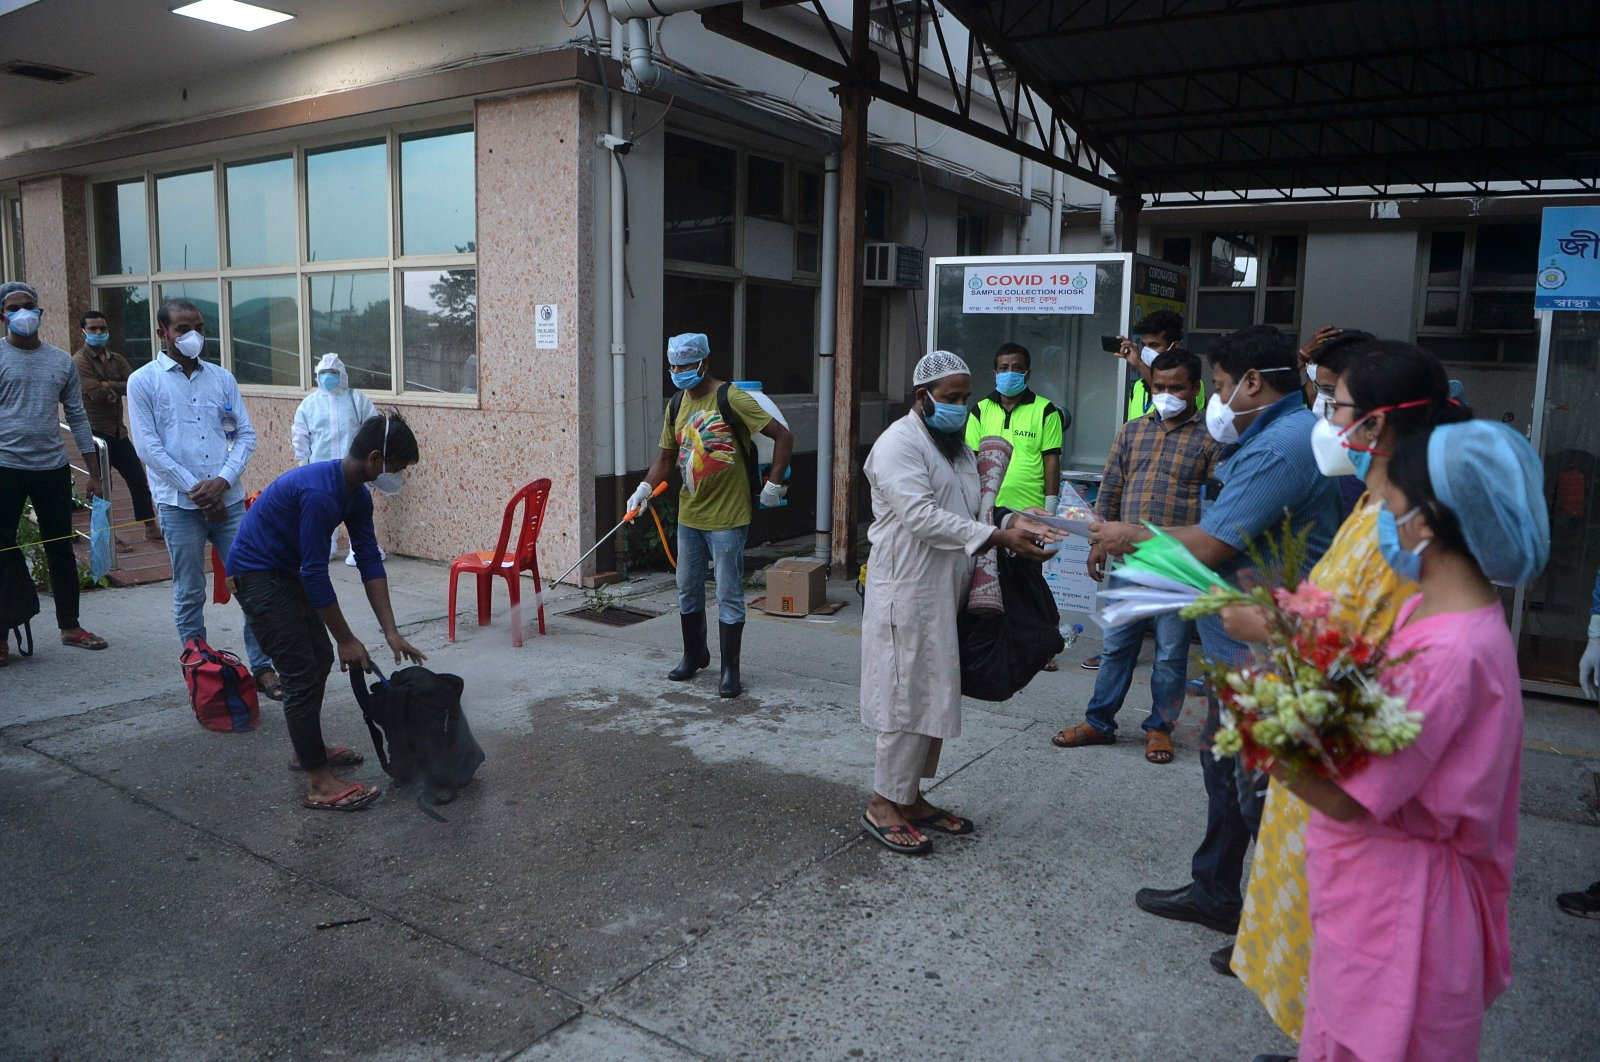 Recovered COVID-19 patients collect certificates from hospital staff as they leave a hospital in Siliguri on June 2, 2020. (AFP Photo)